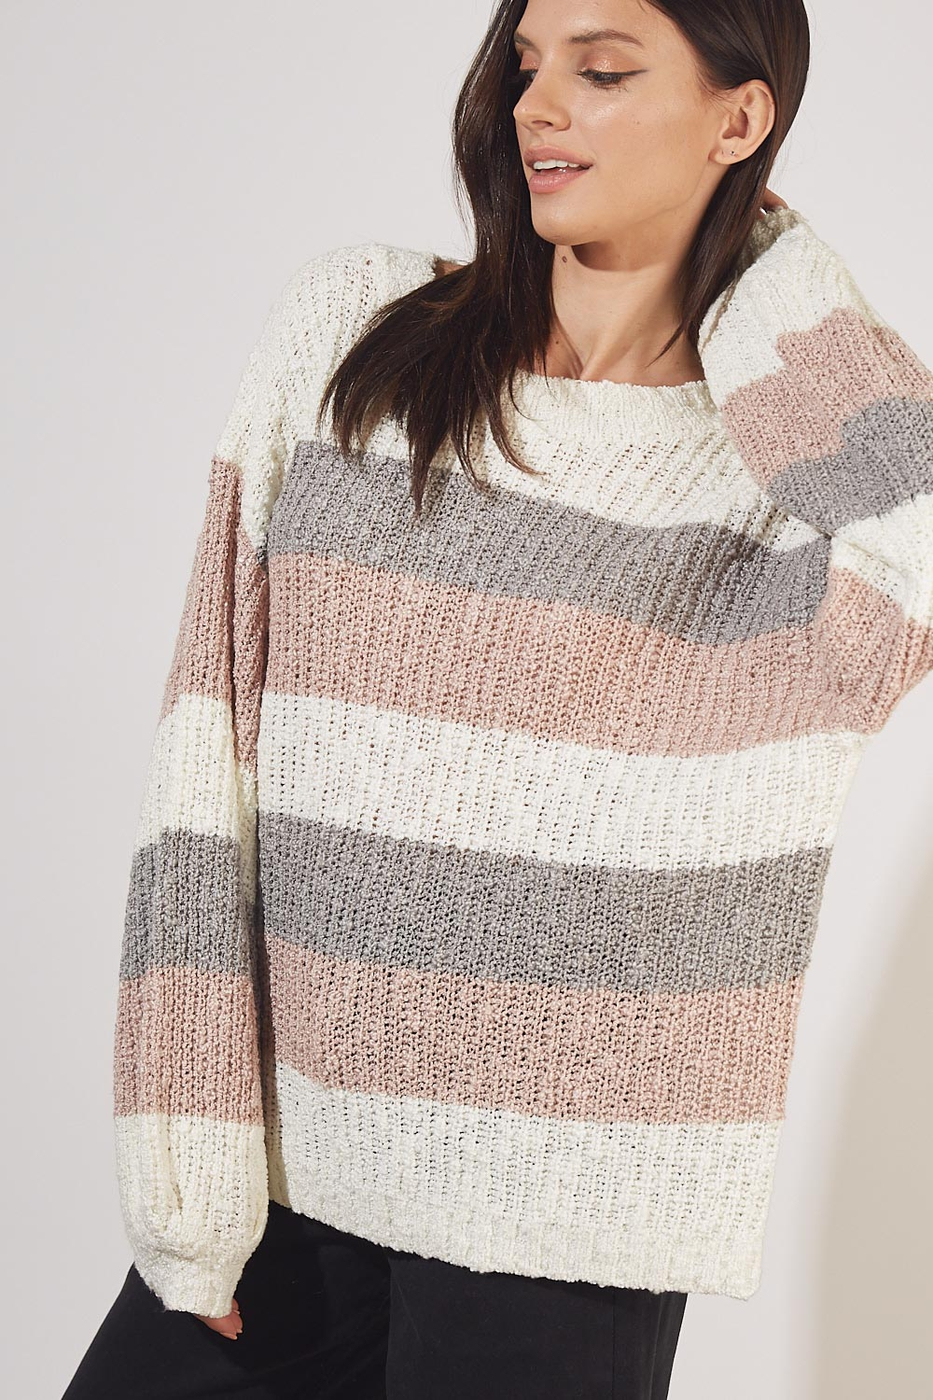 MULTI COLORED STRIPE SWEATER - orangeshine.com